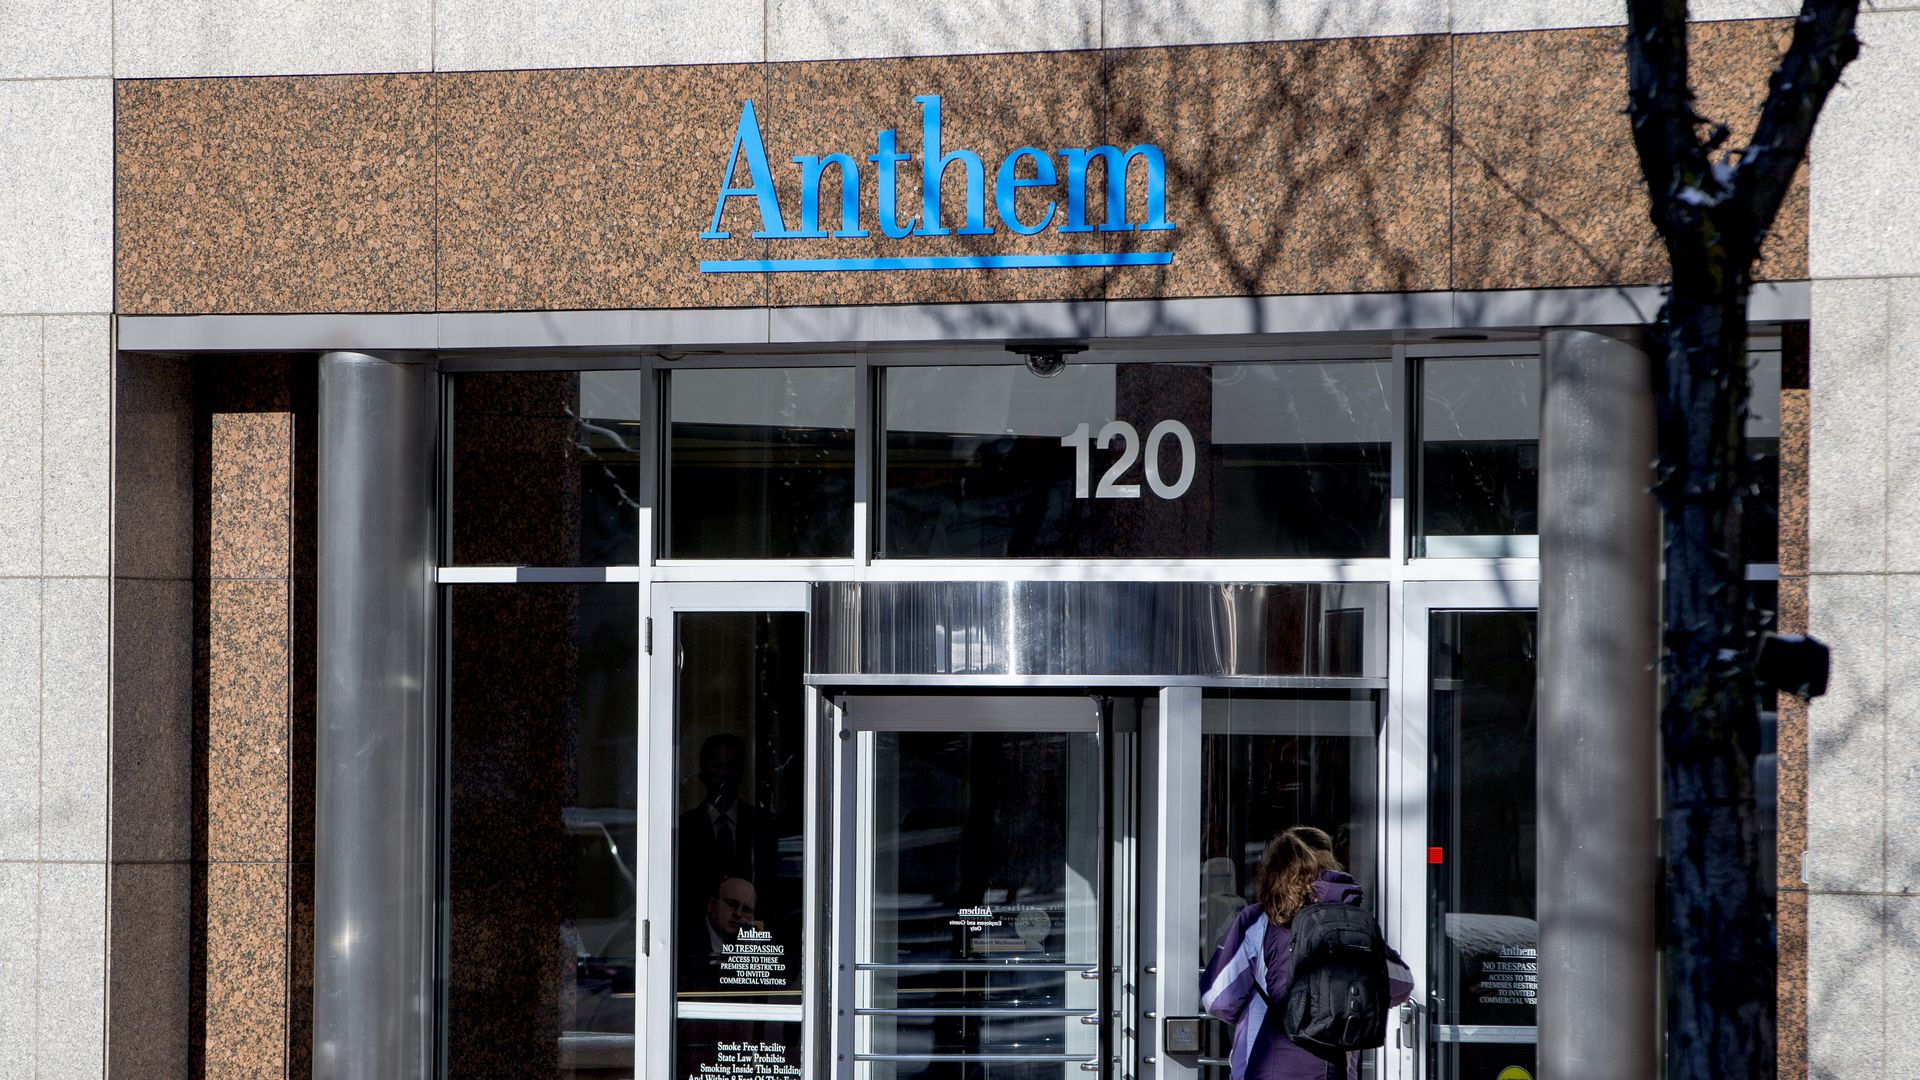 In this image, a woman wearing a backpack walks through the front glass doors of an Anthem Blue Cross Blue Shield building.